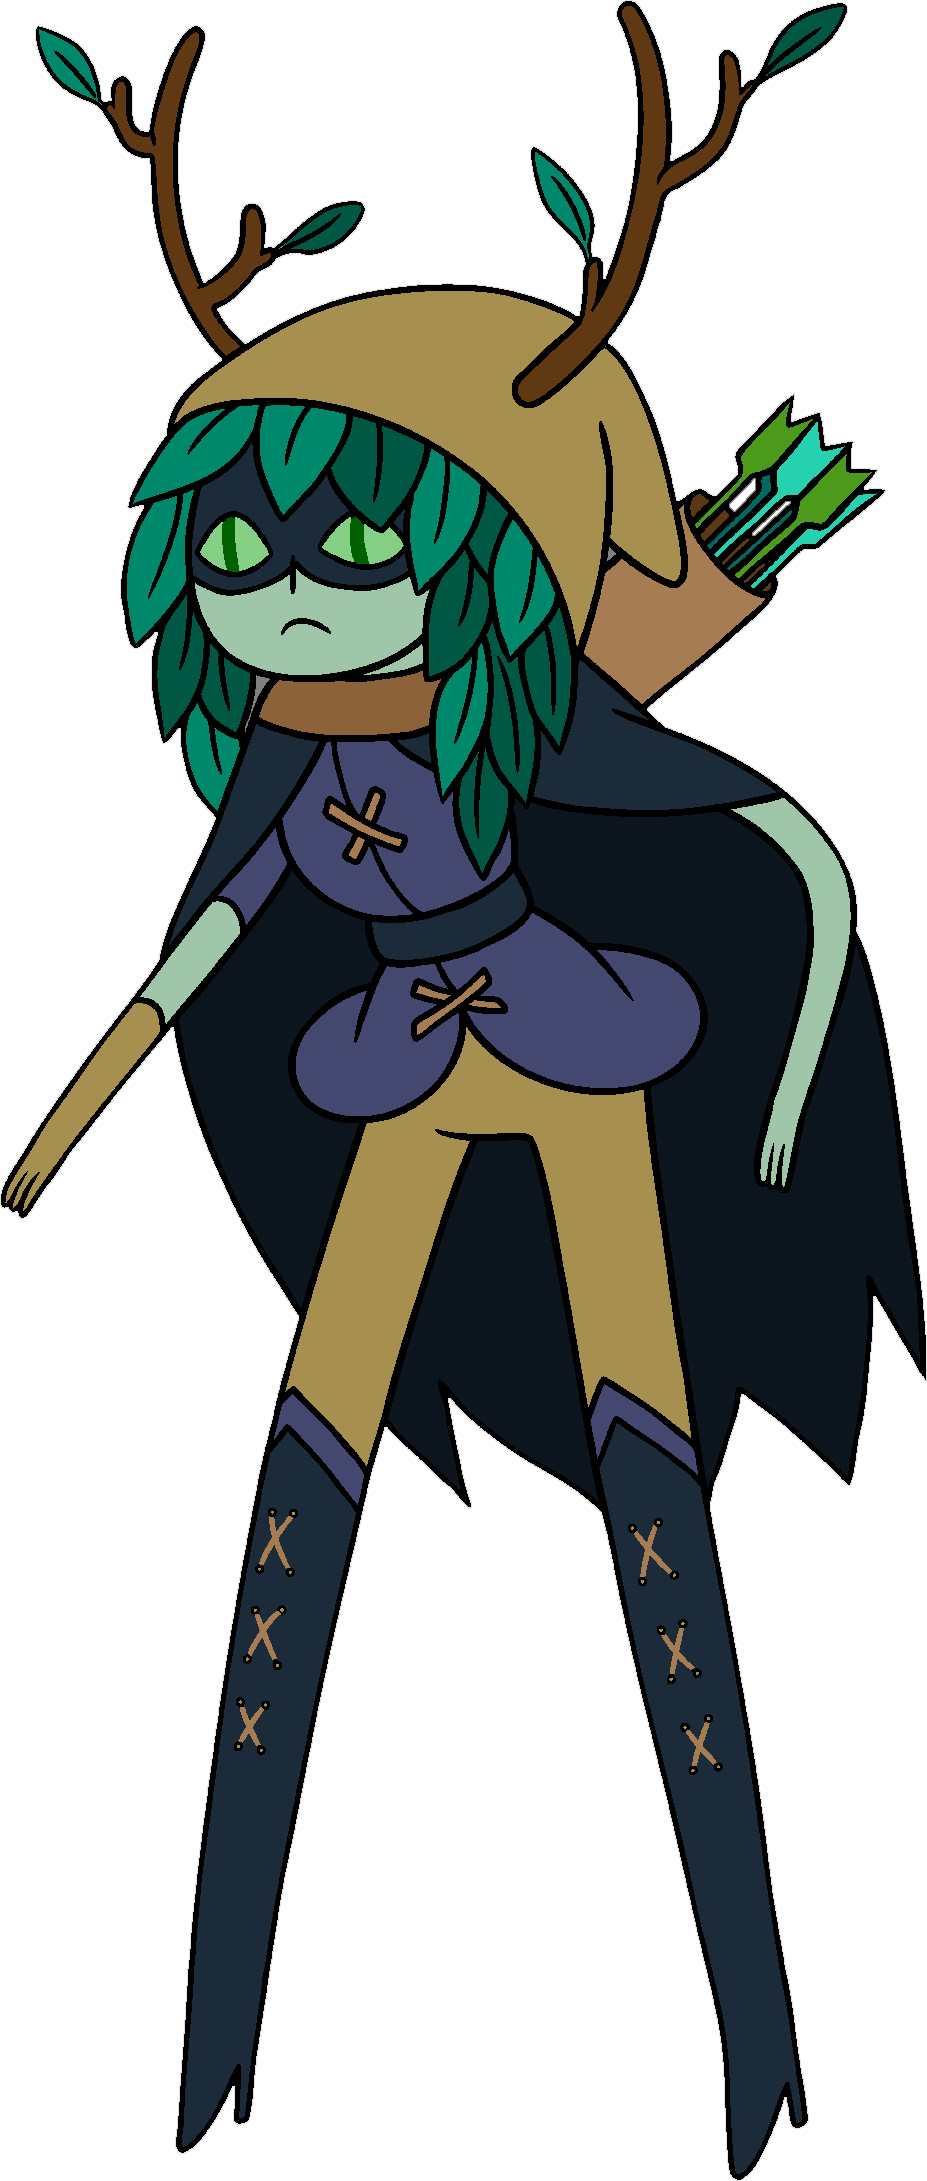 Echo drawing adventure time. Huntress wizard cosplay and